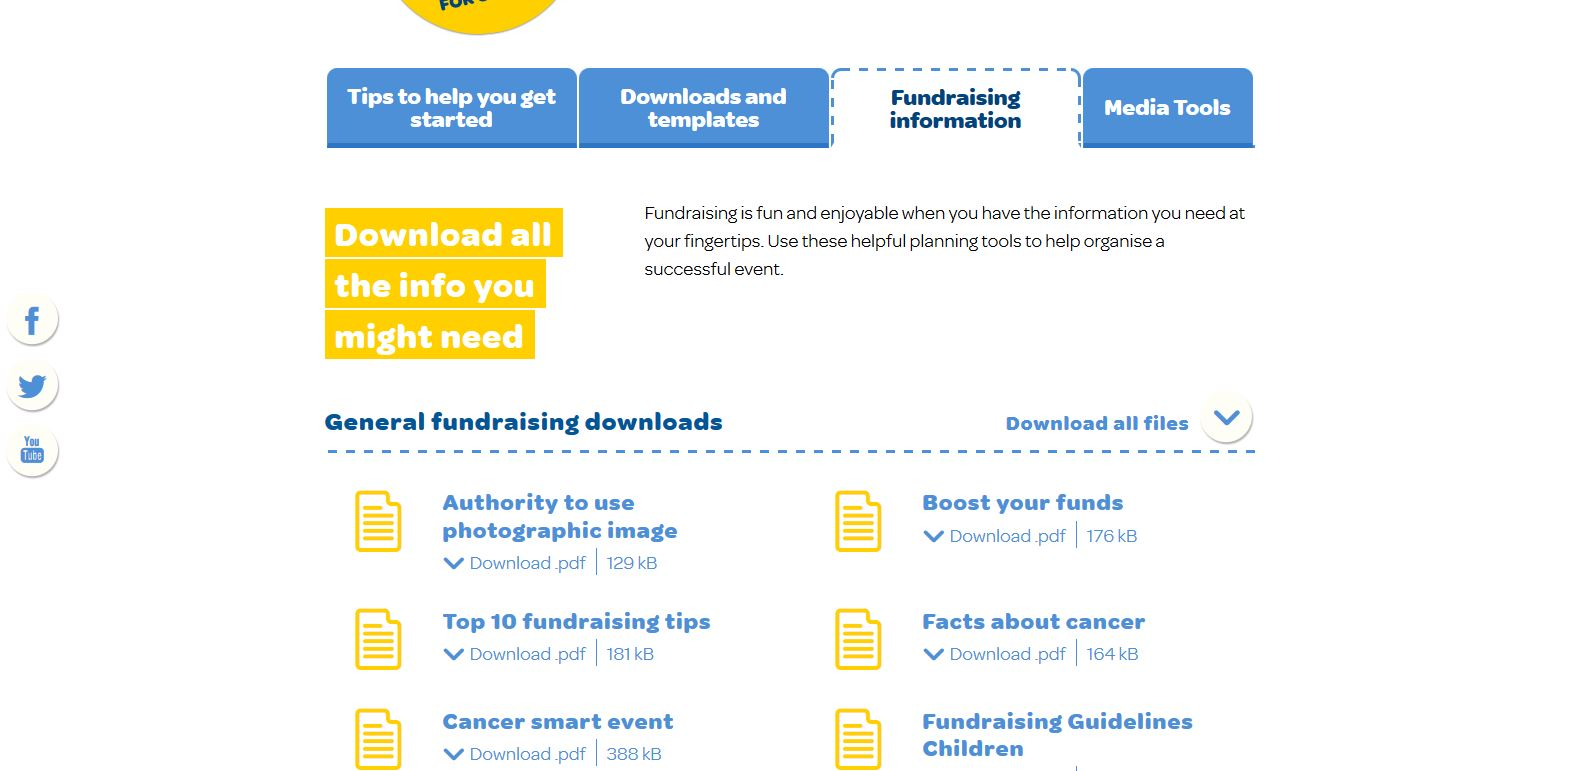 Do it for cancer - Download kits